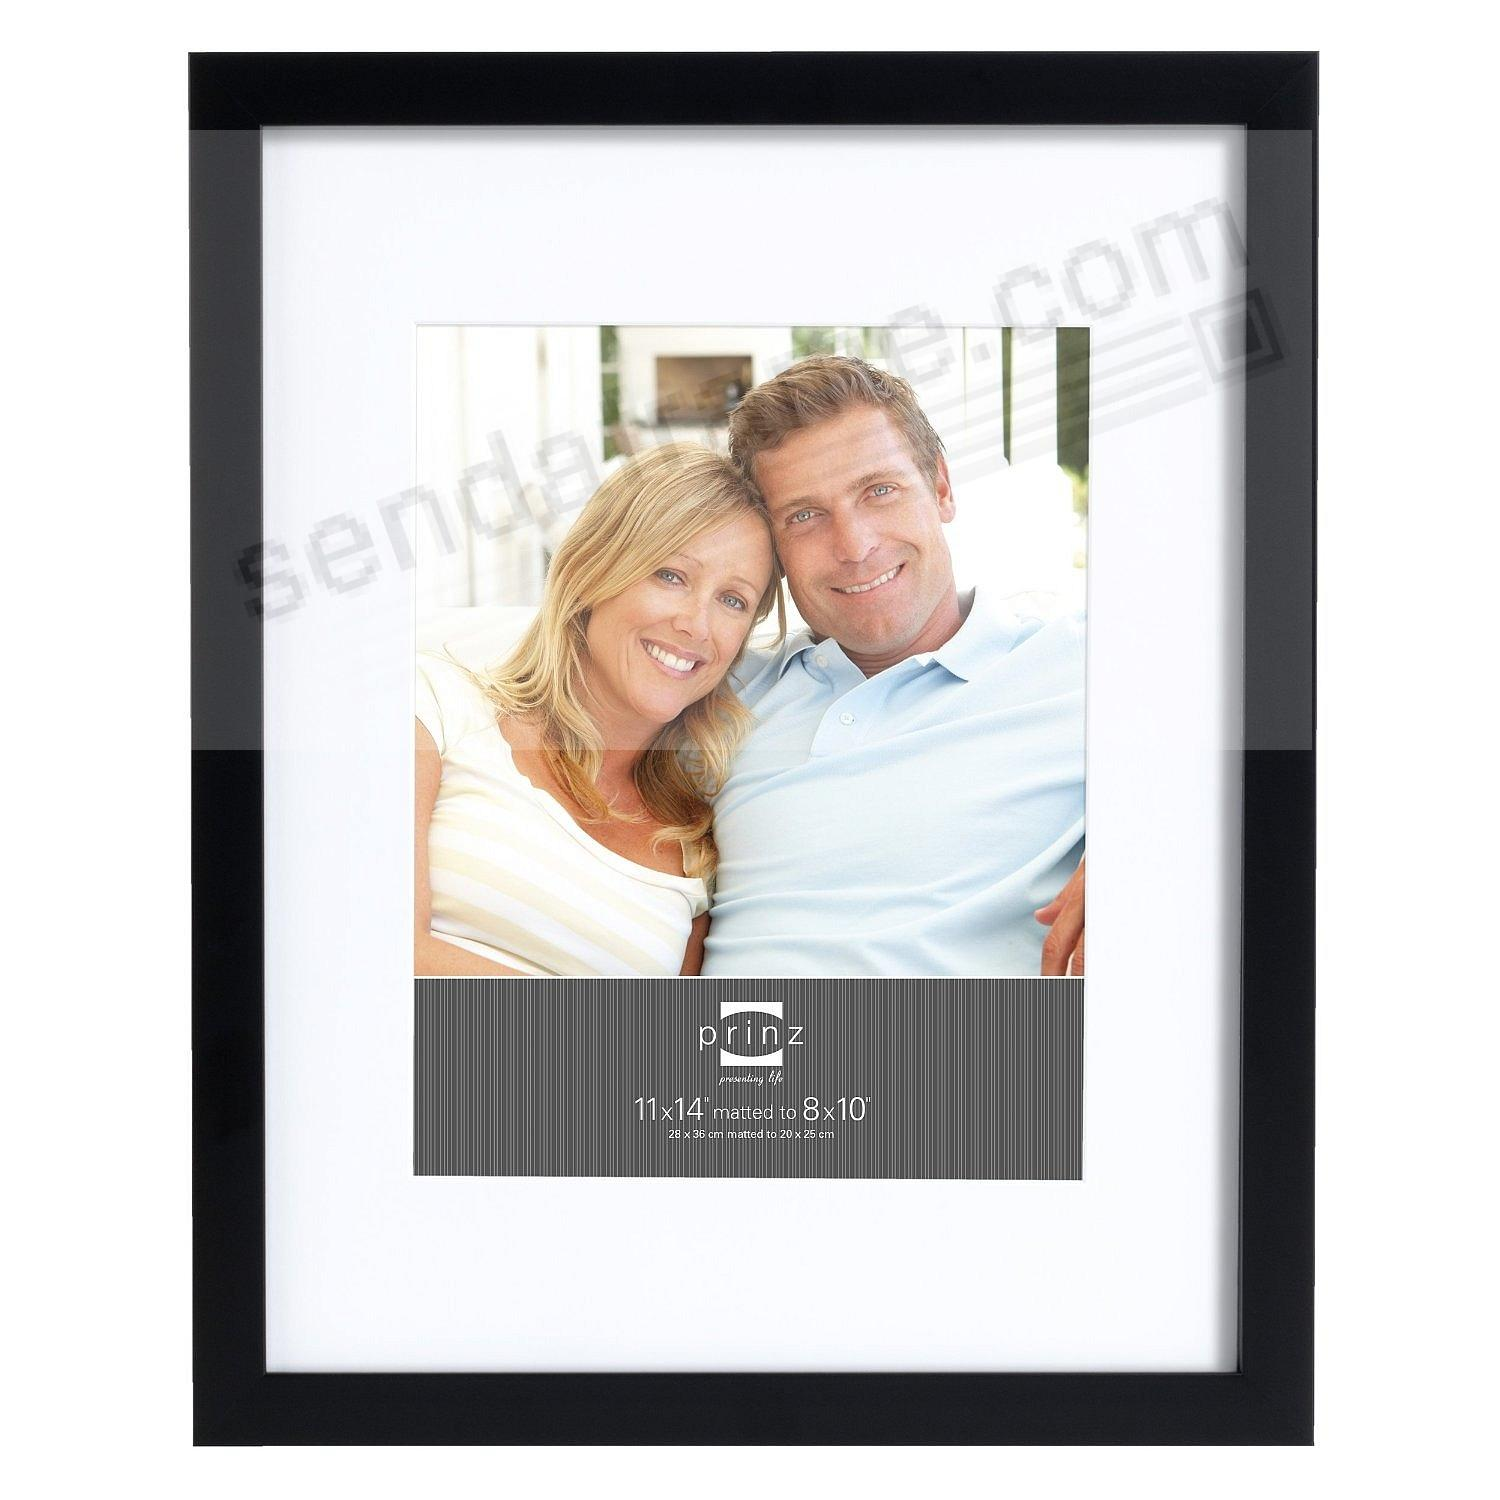 Matted black polystyrene 11x14/8x10 frame by Prinz®